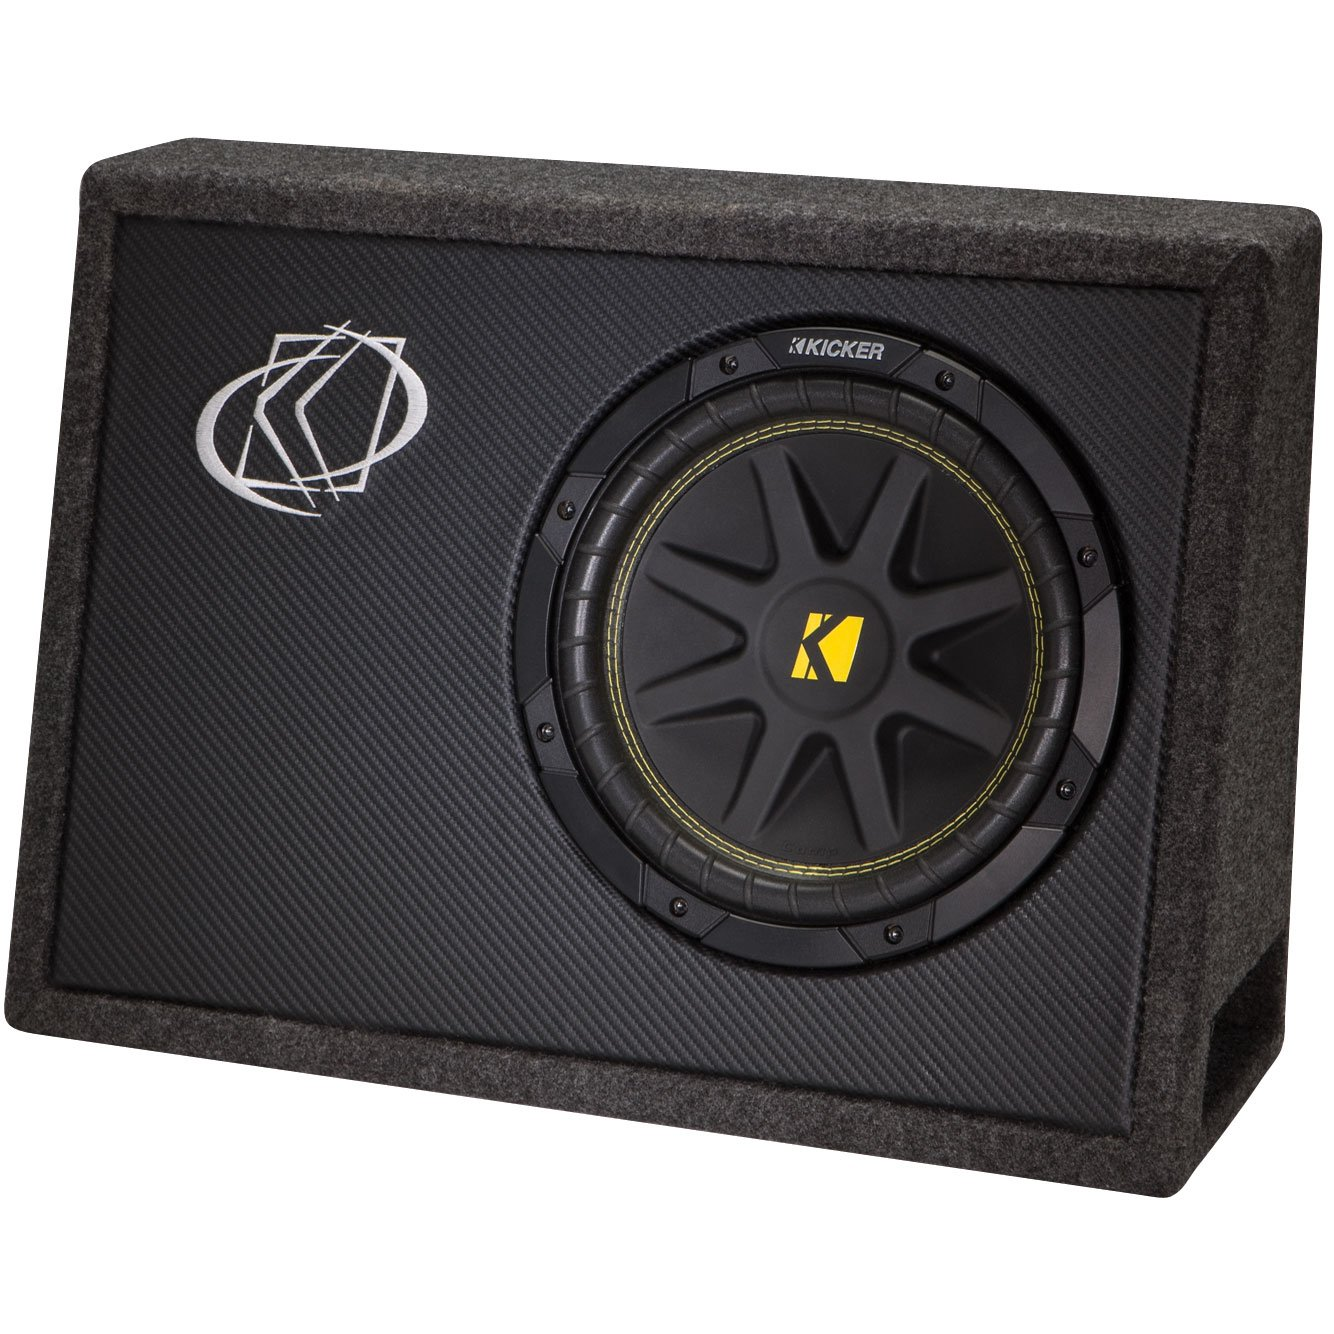 Best Subwoofers For Car Audio Systems 2018 Buyers Guide And Jl Marine Amp Wiring Kit Marinerated Kicker 10tc104 10 300w Tc104 Loaded Subwoofer Sub Box Enclosure